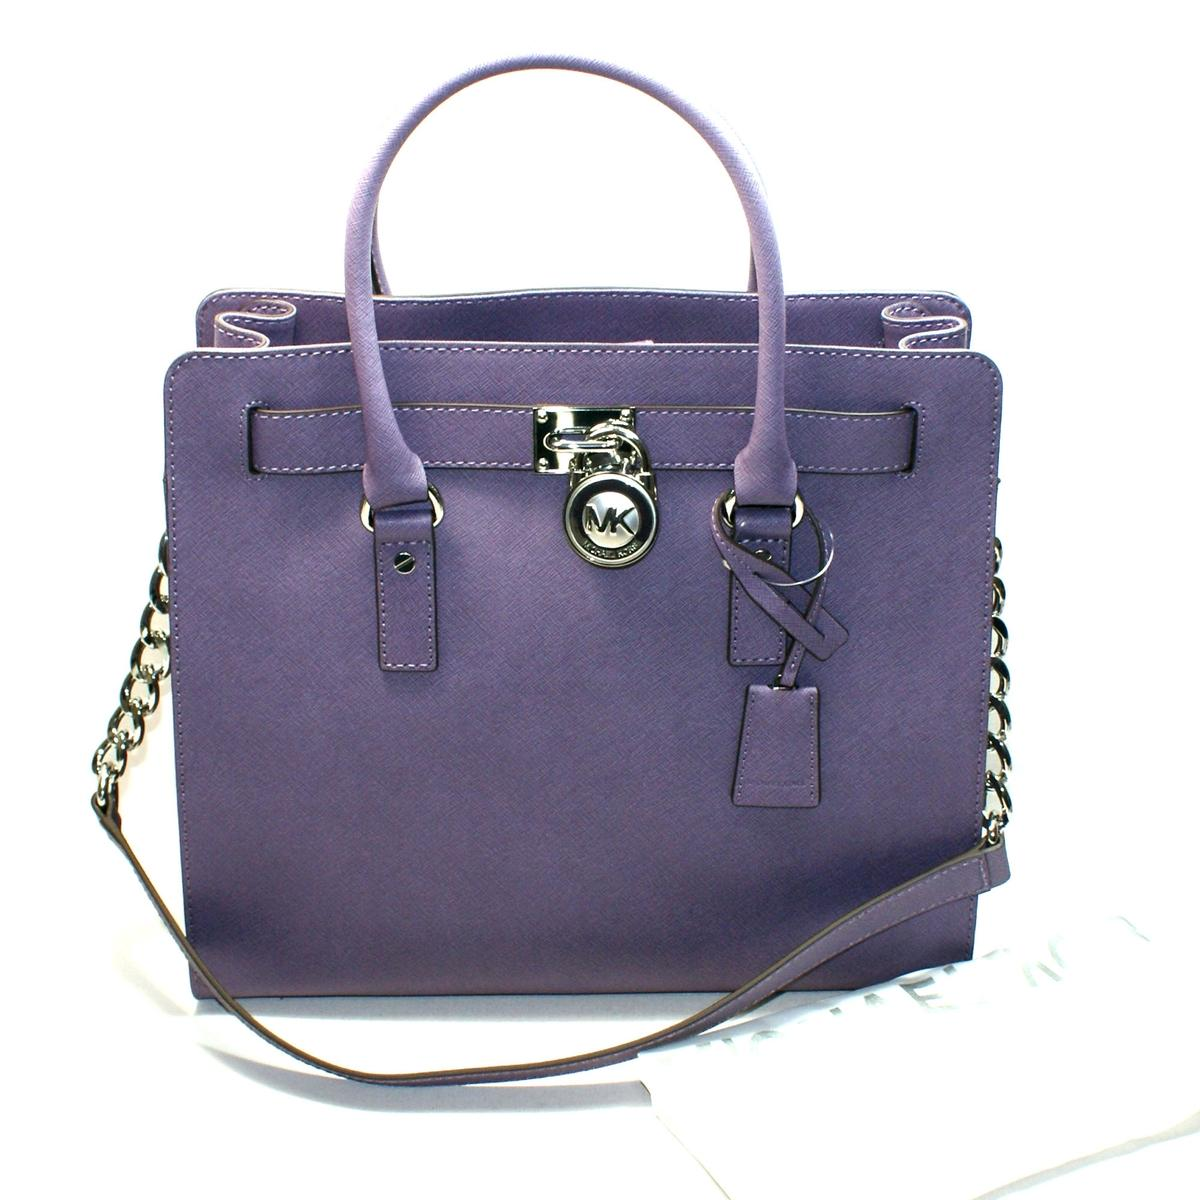 1b6872a79cf3 Home · Michael Kors · Hamilton Large Genuine Leather Tote/ Shoulder Bag  Wisteria. CLICK THUMBNAIL TO ZOOM. Found ...